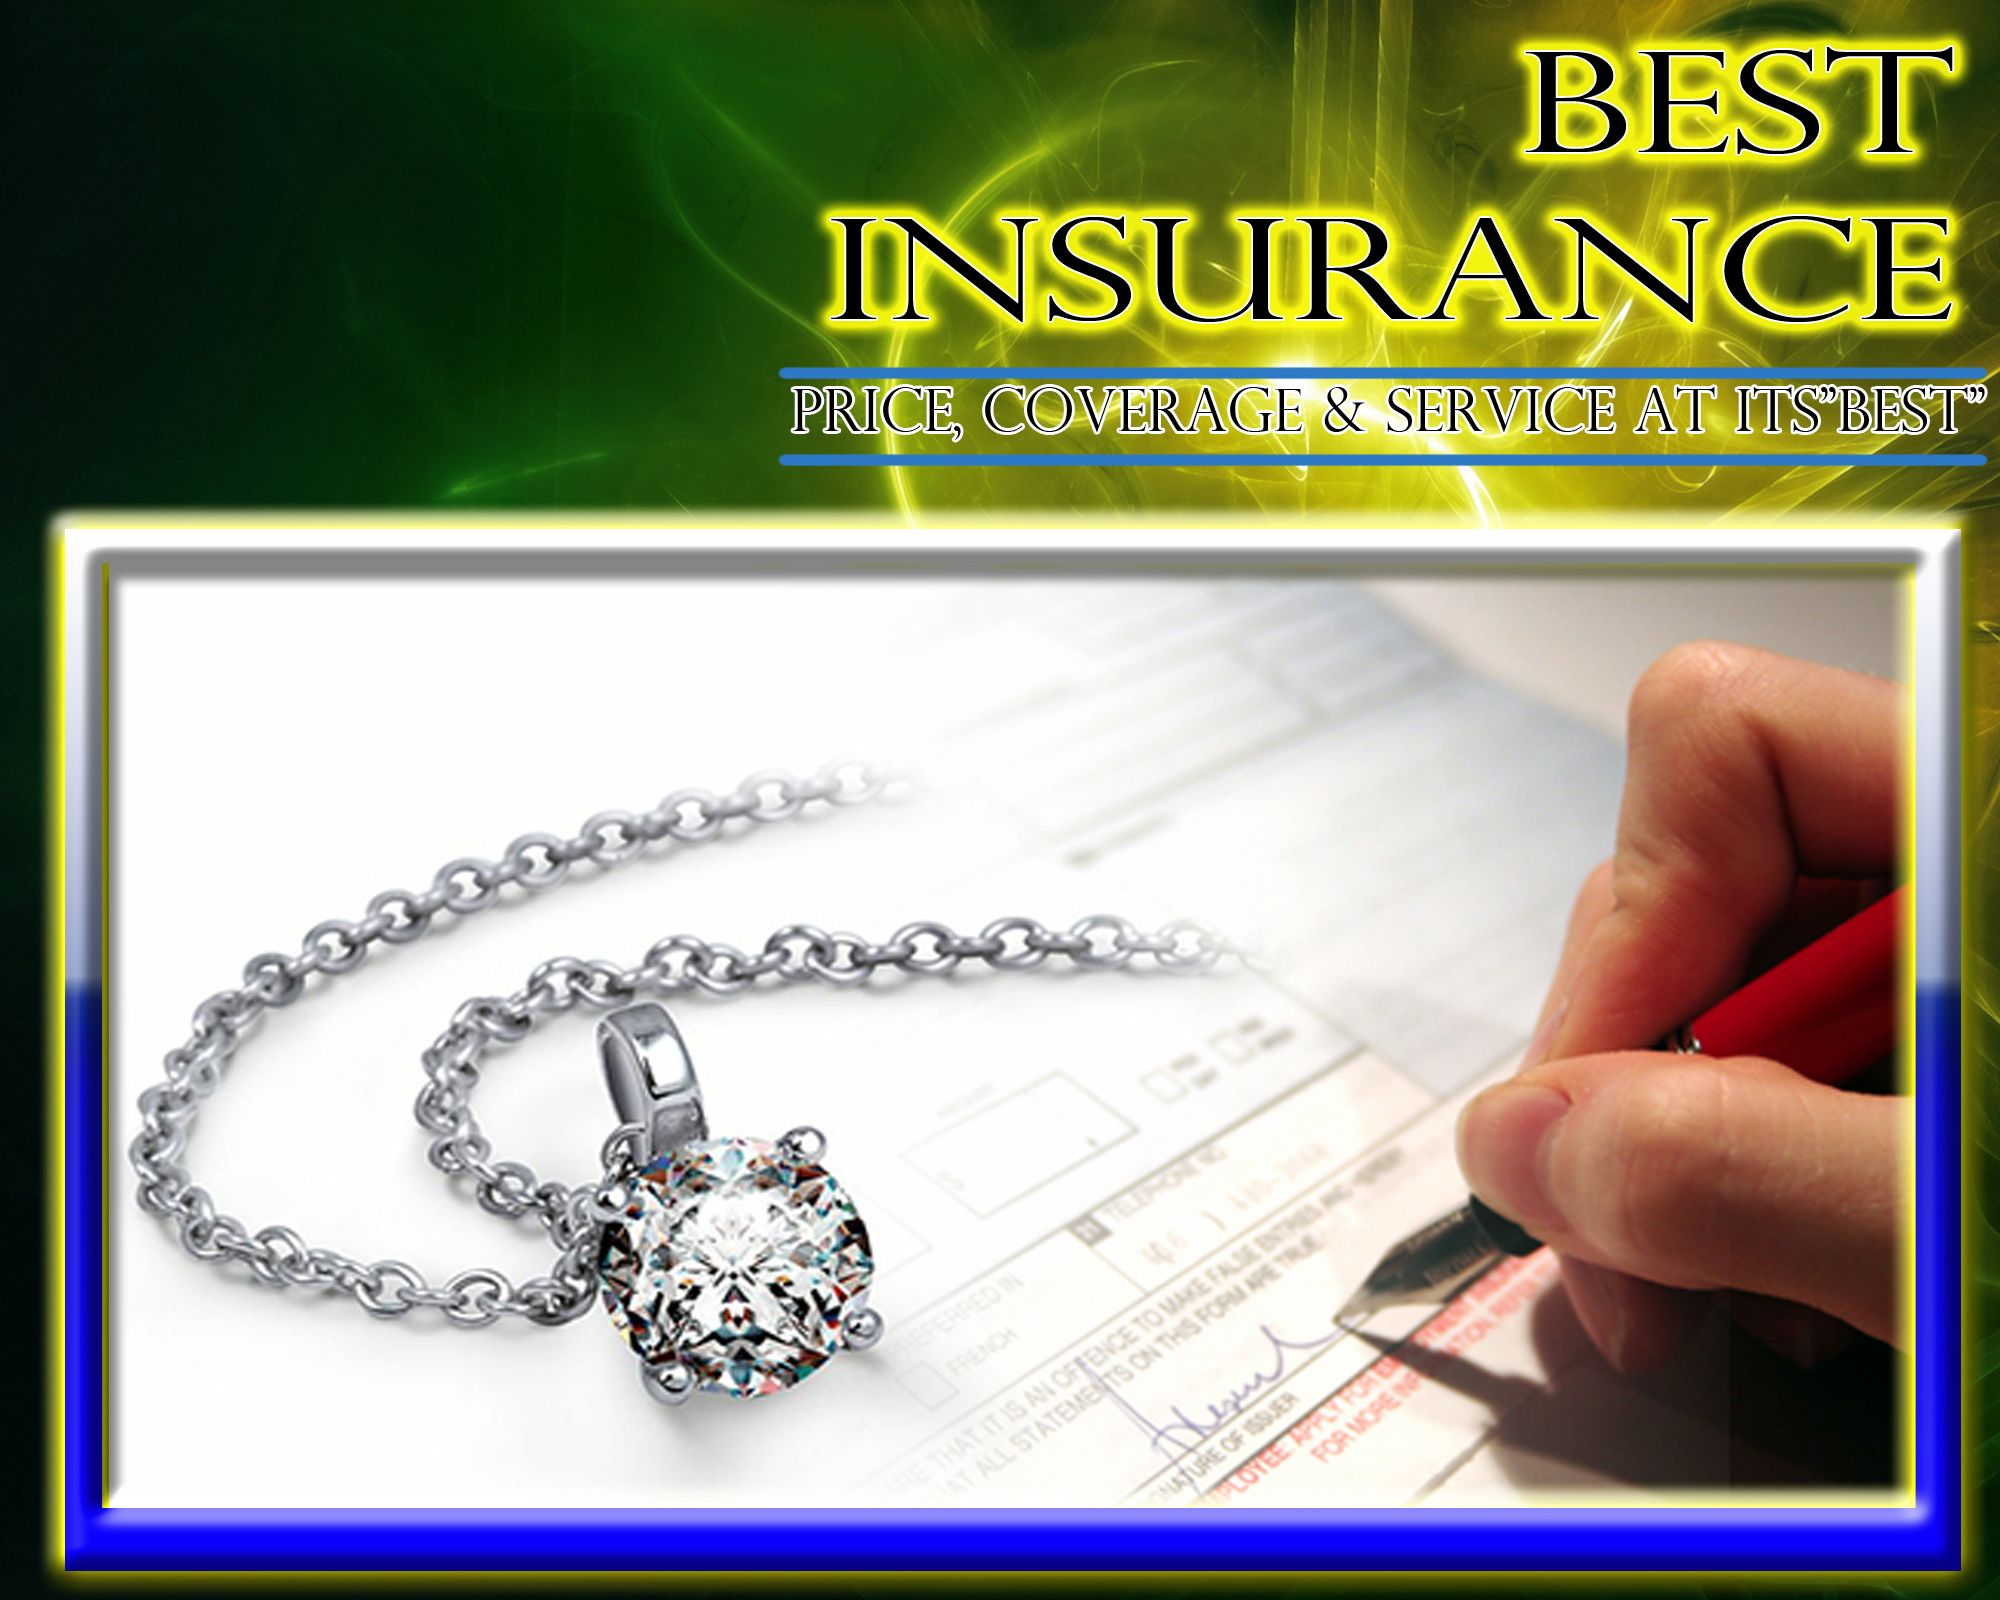 40+ What does jewelry insurance cover information